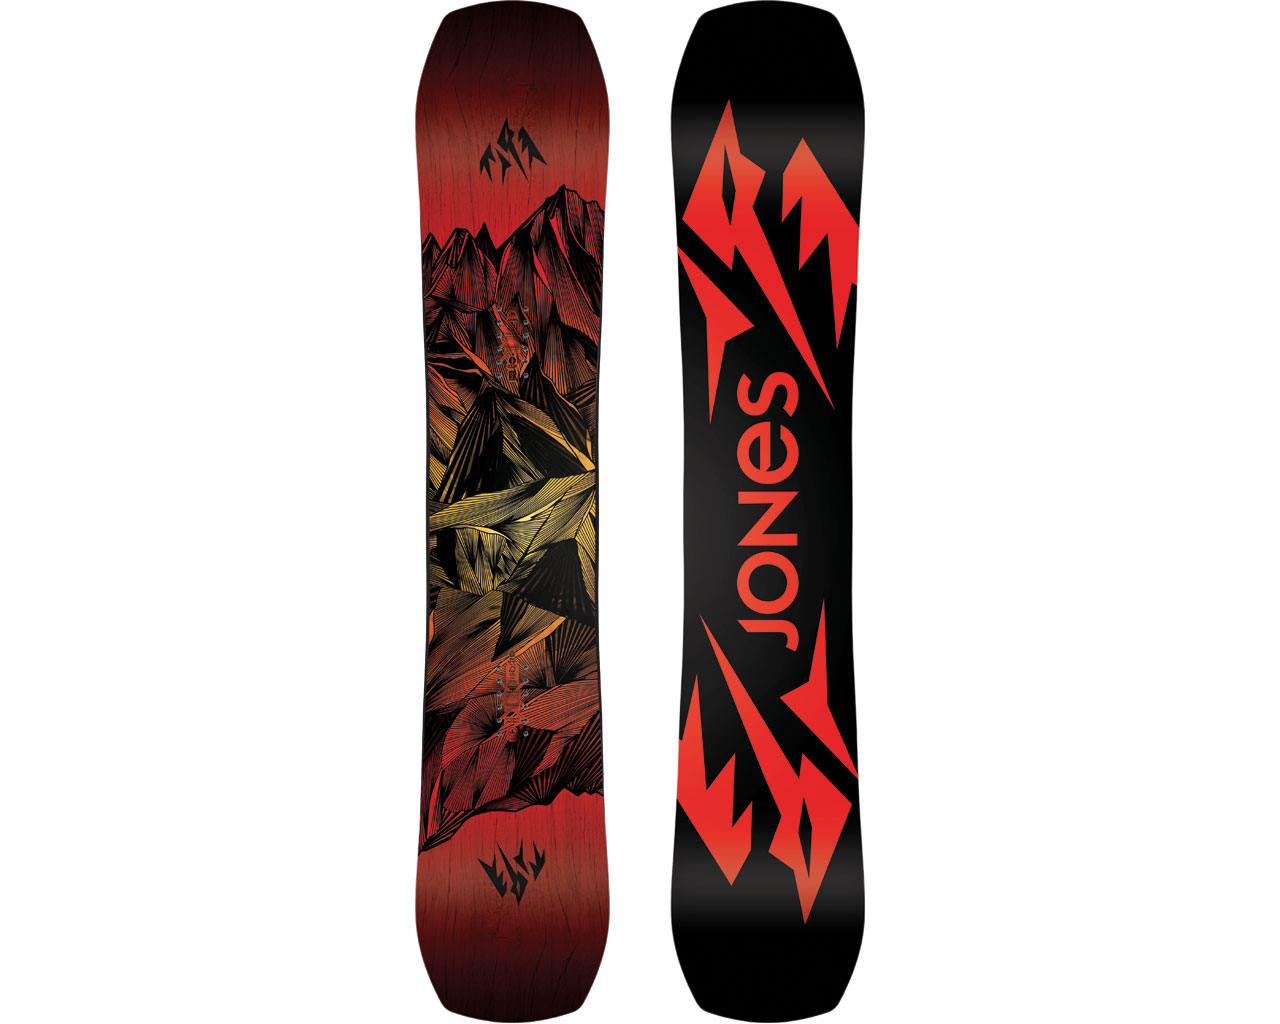 Jones FW20/21 Snowboard Preview